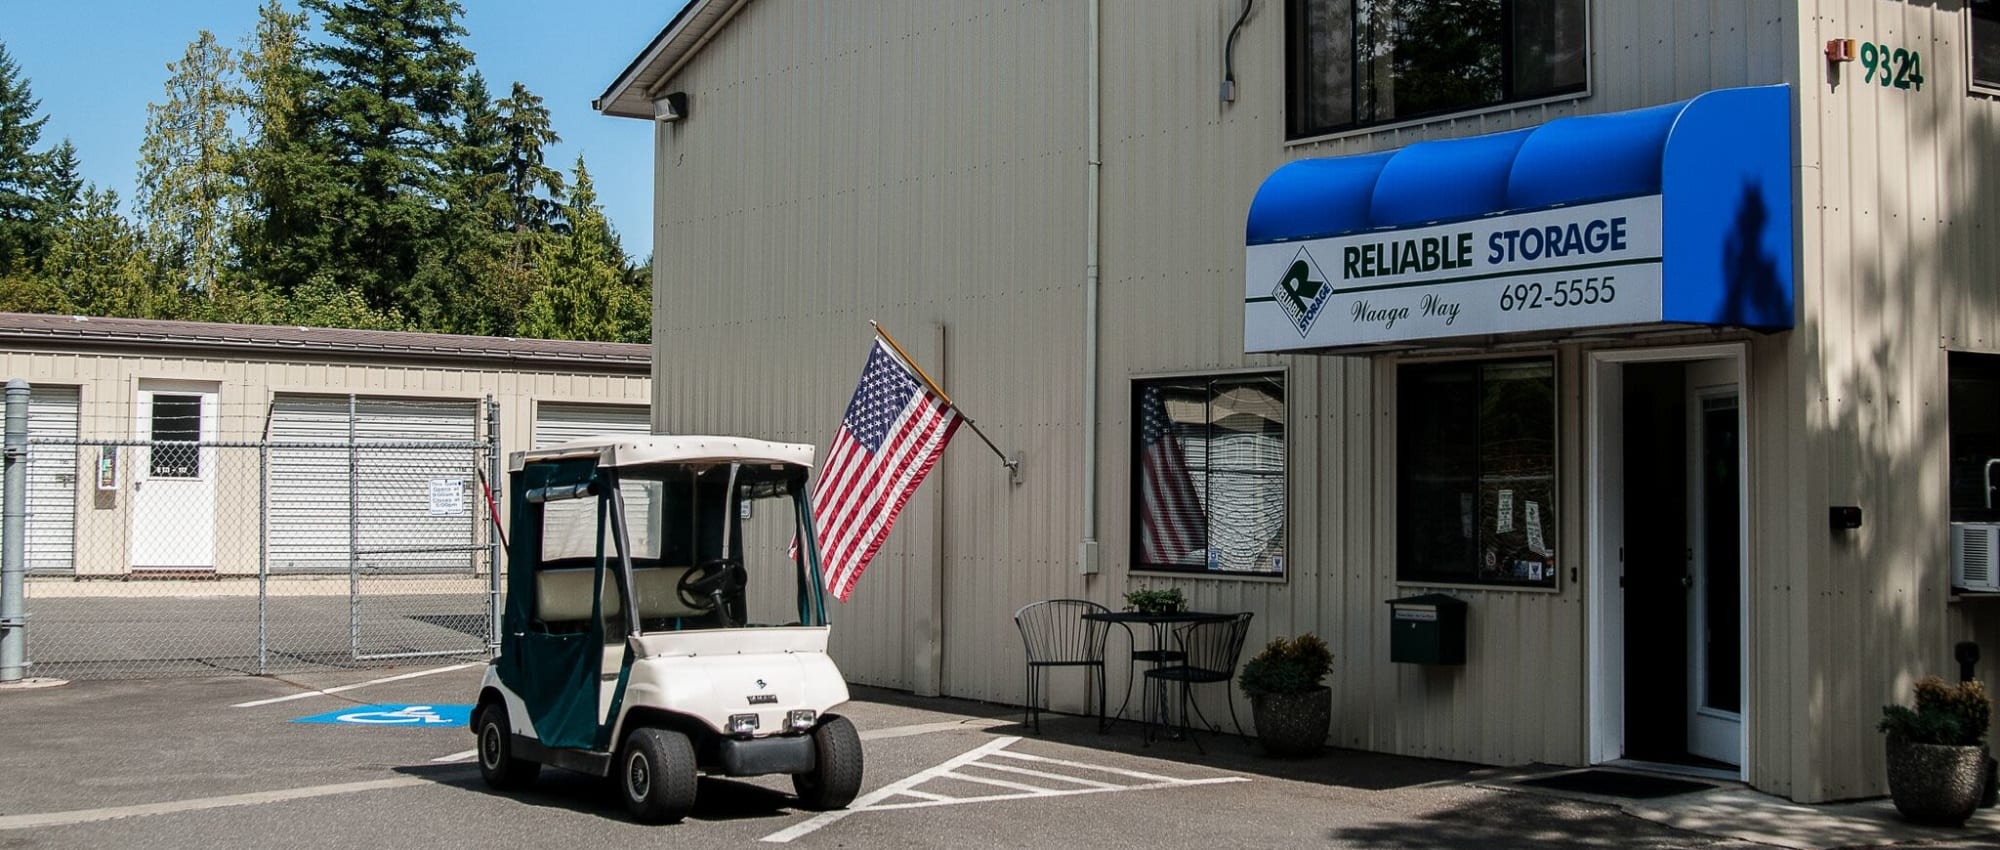 Self storage in Bremerton WA